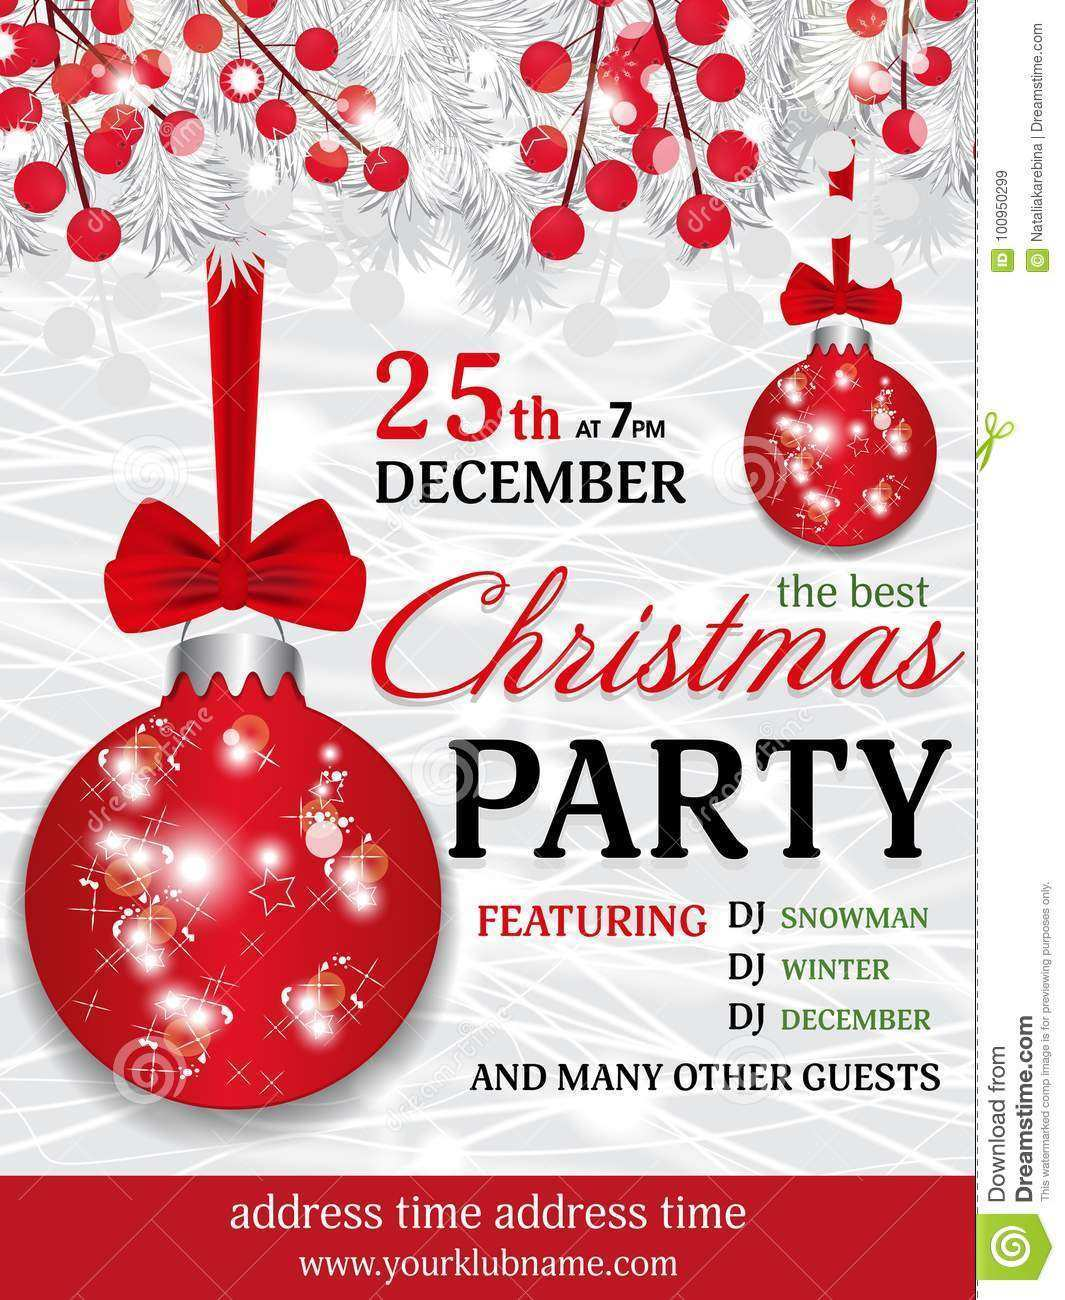 5 Free Christmas Party Invitation Template Publisher in Photoshop